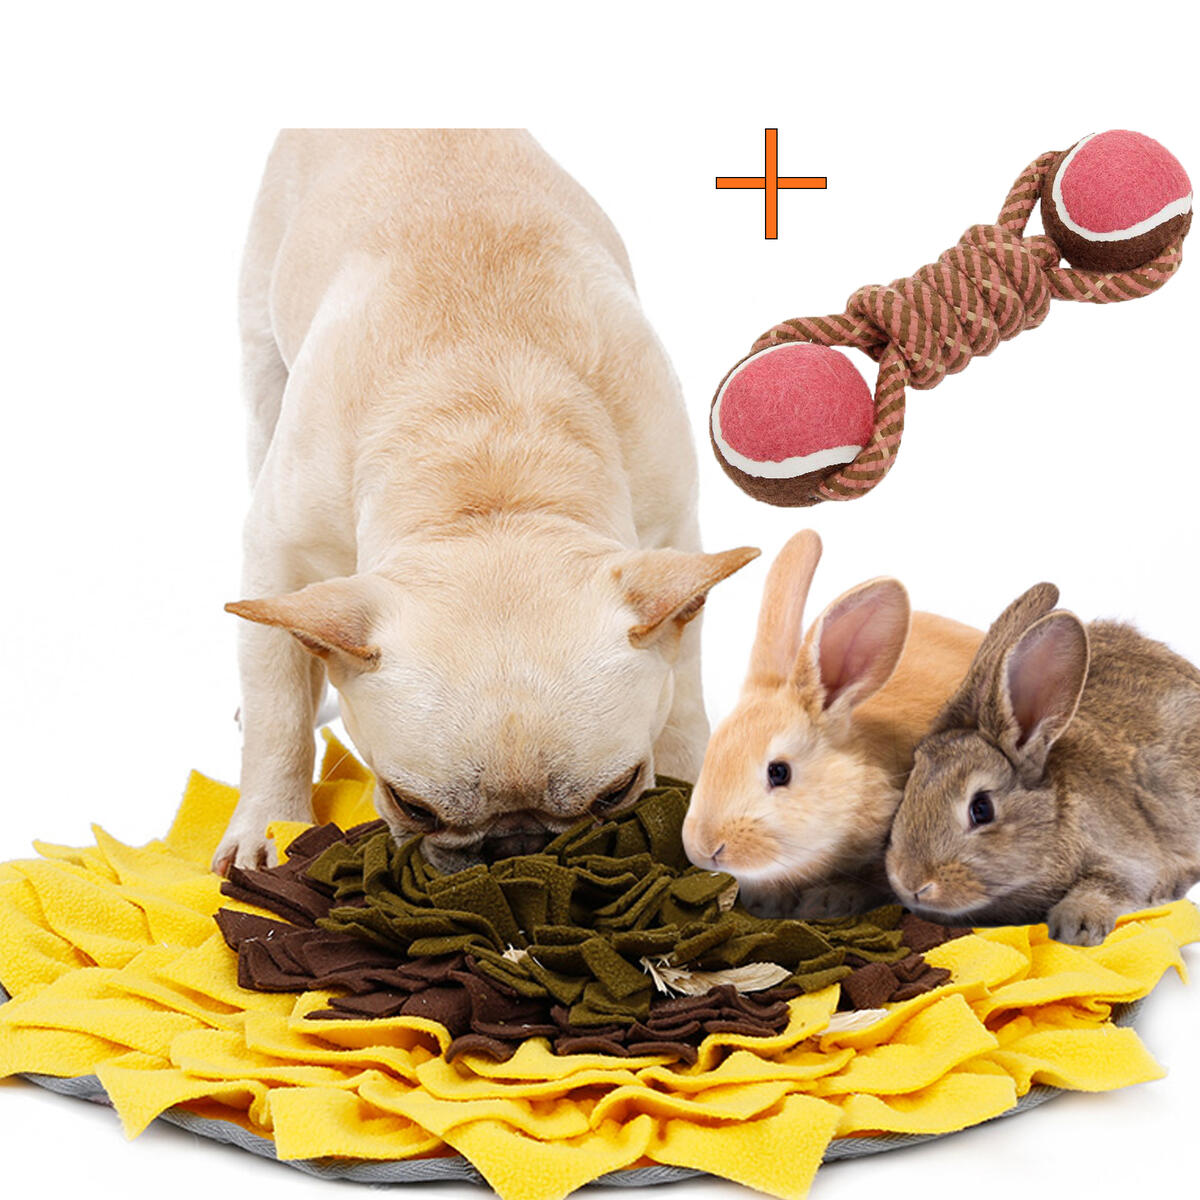 Snuffle Mat for Dogs Feeding Mat with 2 in 1 Chew Throwing Toy Interactive Dog Food Puzzle Encourages Natural Foraging Skills for Puppies, Cats, Rabbits, Guinea Pigs, Ferrets, Chinchillas, Rats